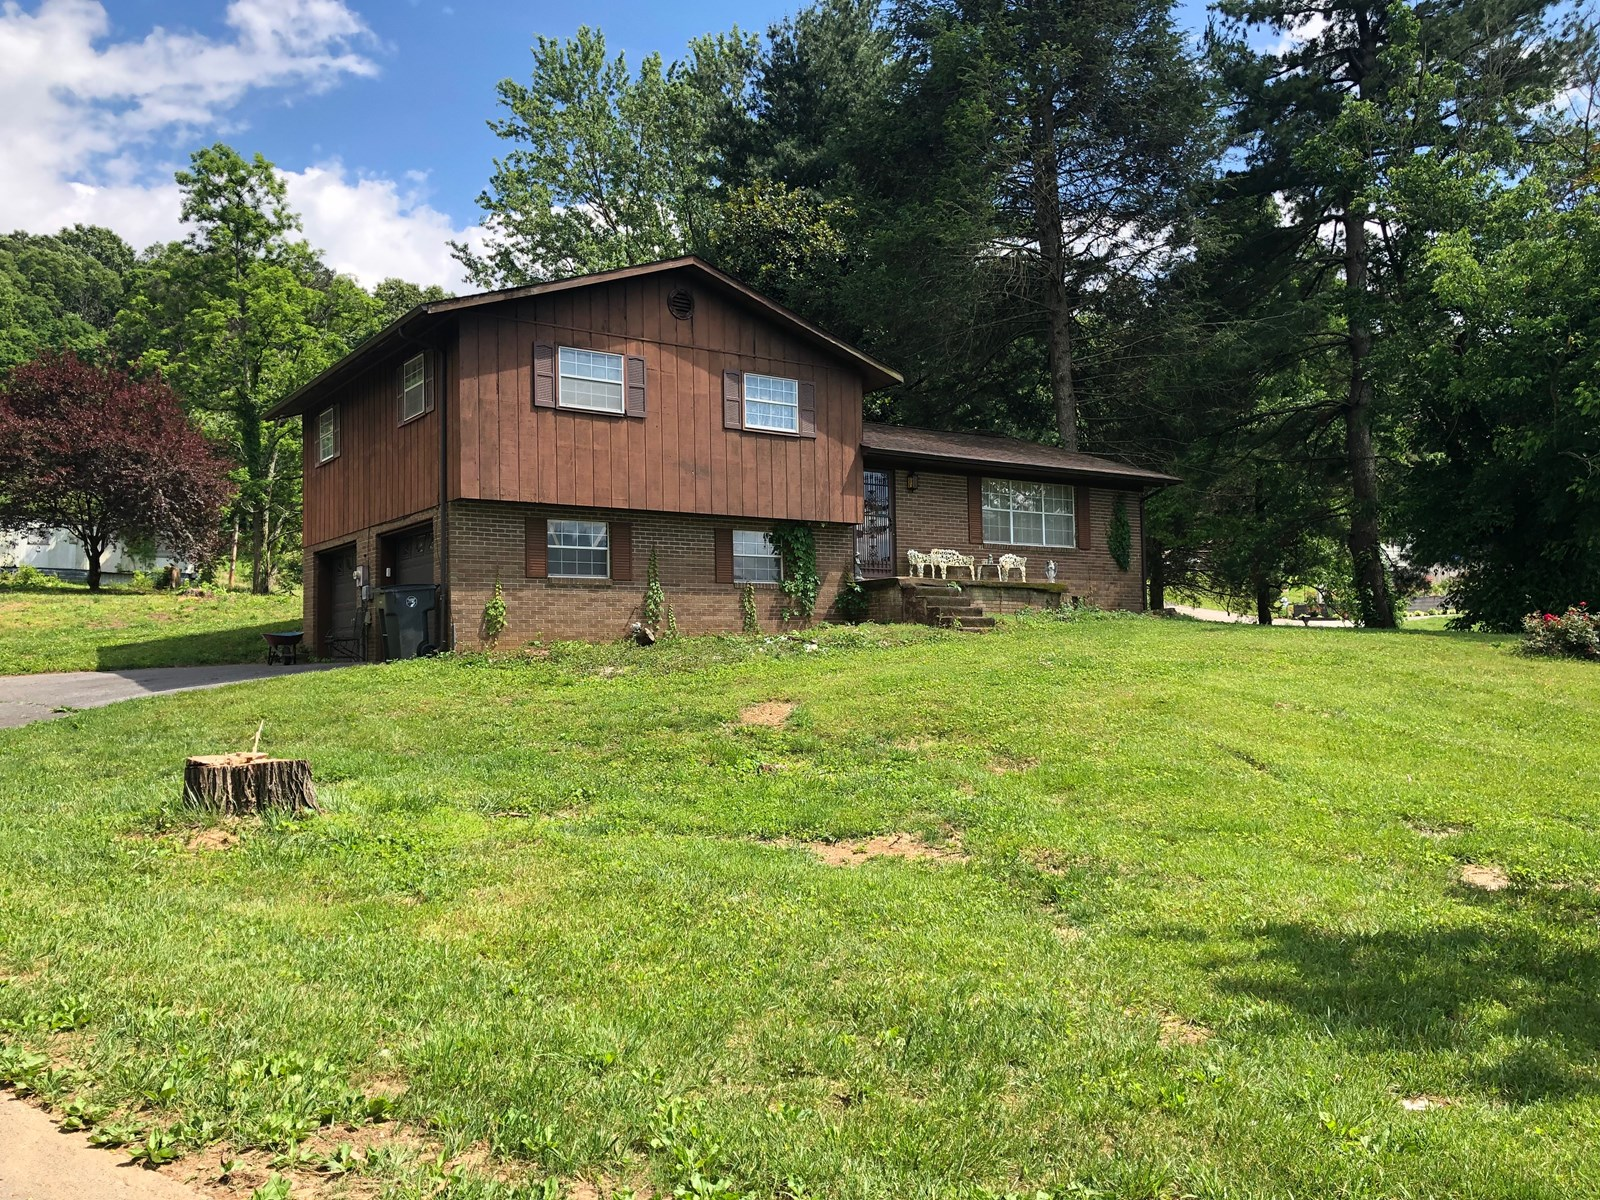 Split Level Home on 1 Acre For Sale In Morristown, TN